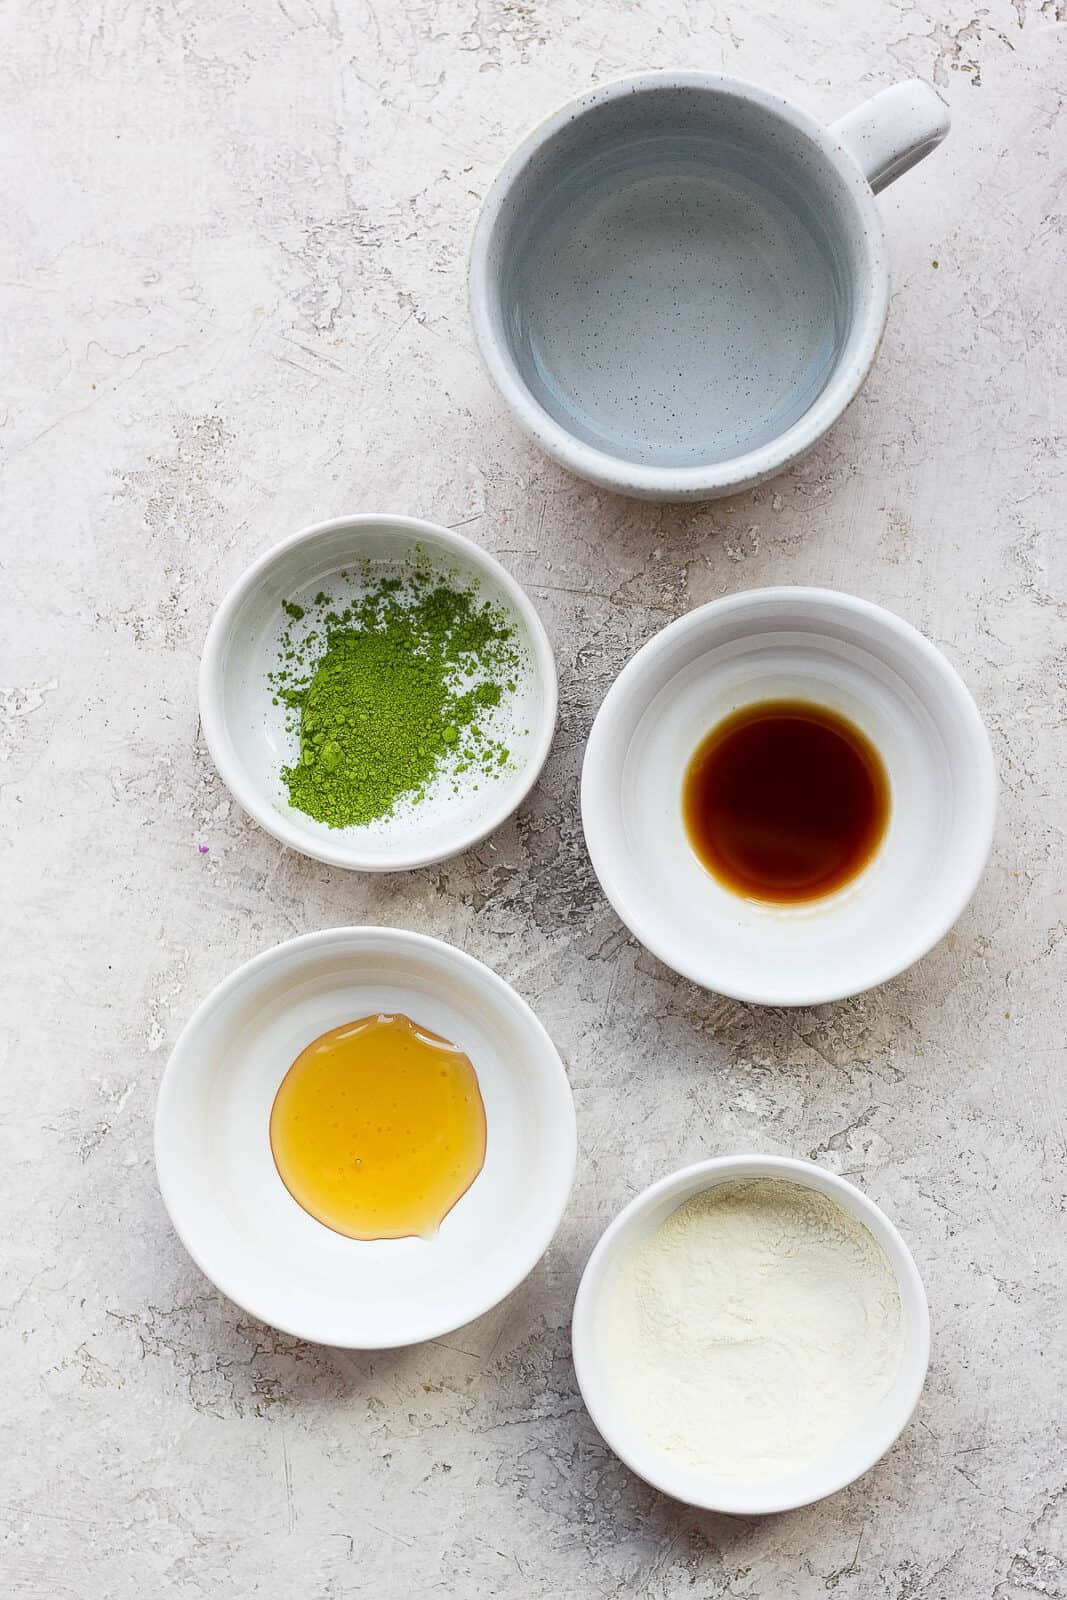 Ingredients for a matcha latte in small bowls.